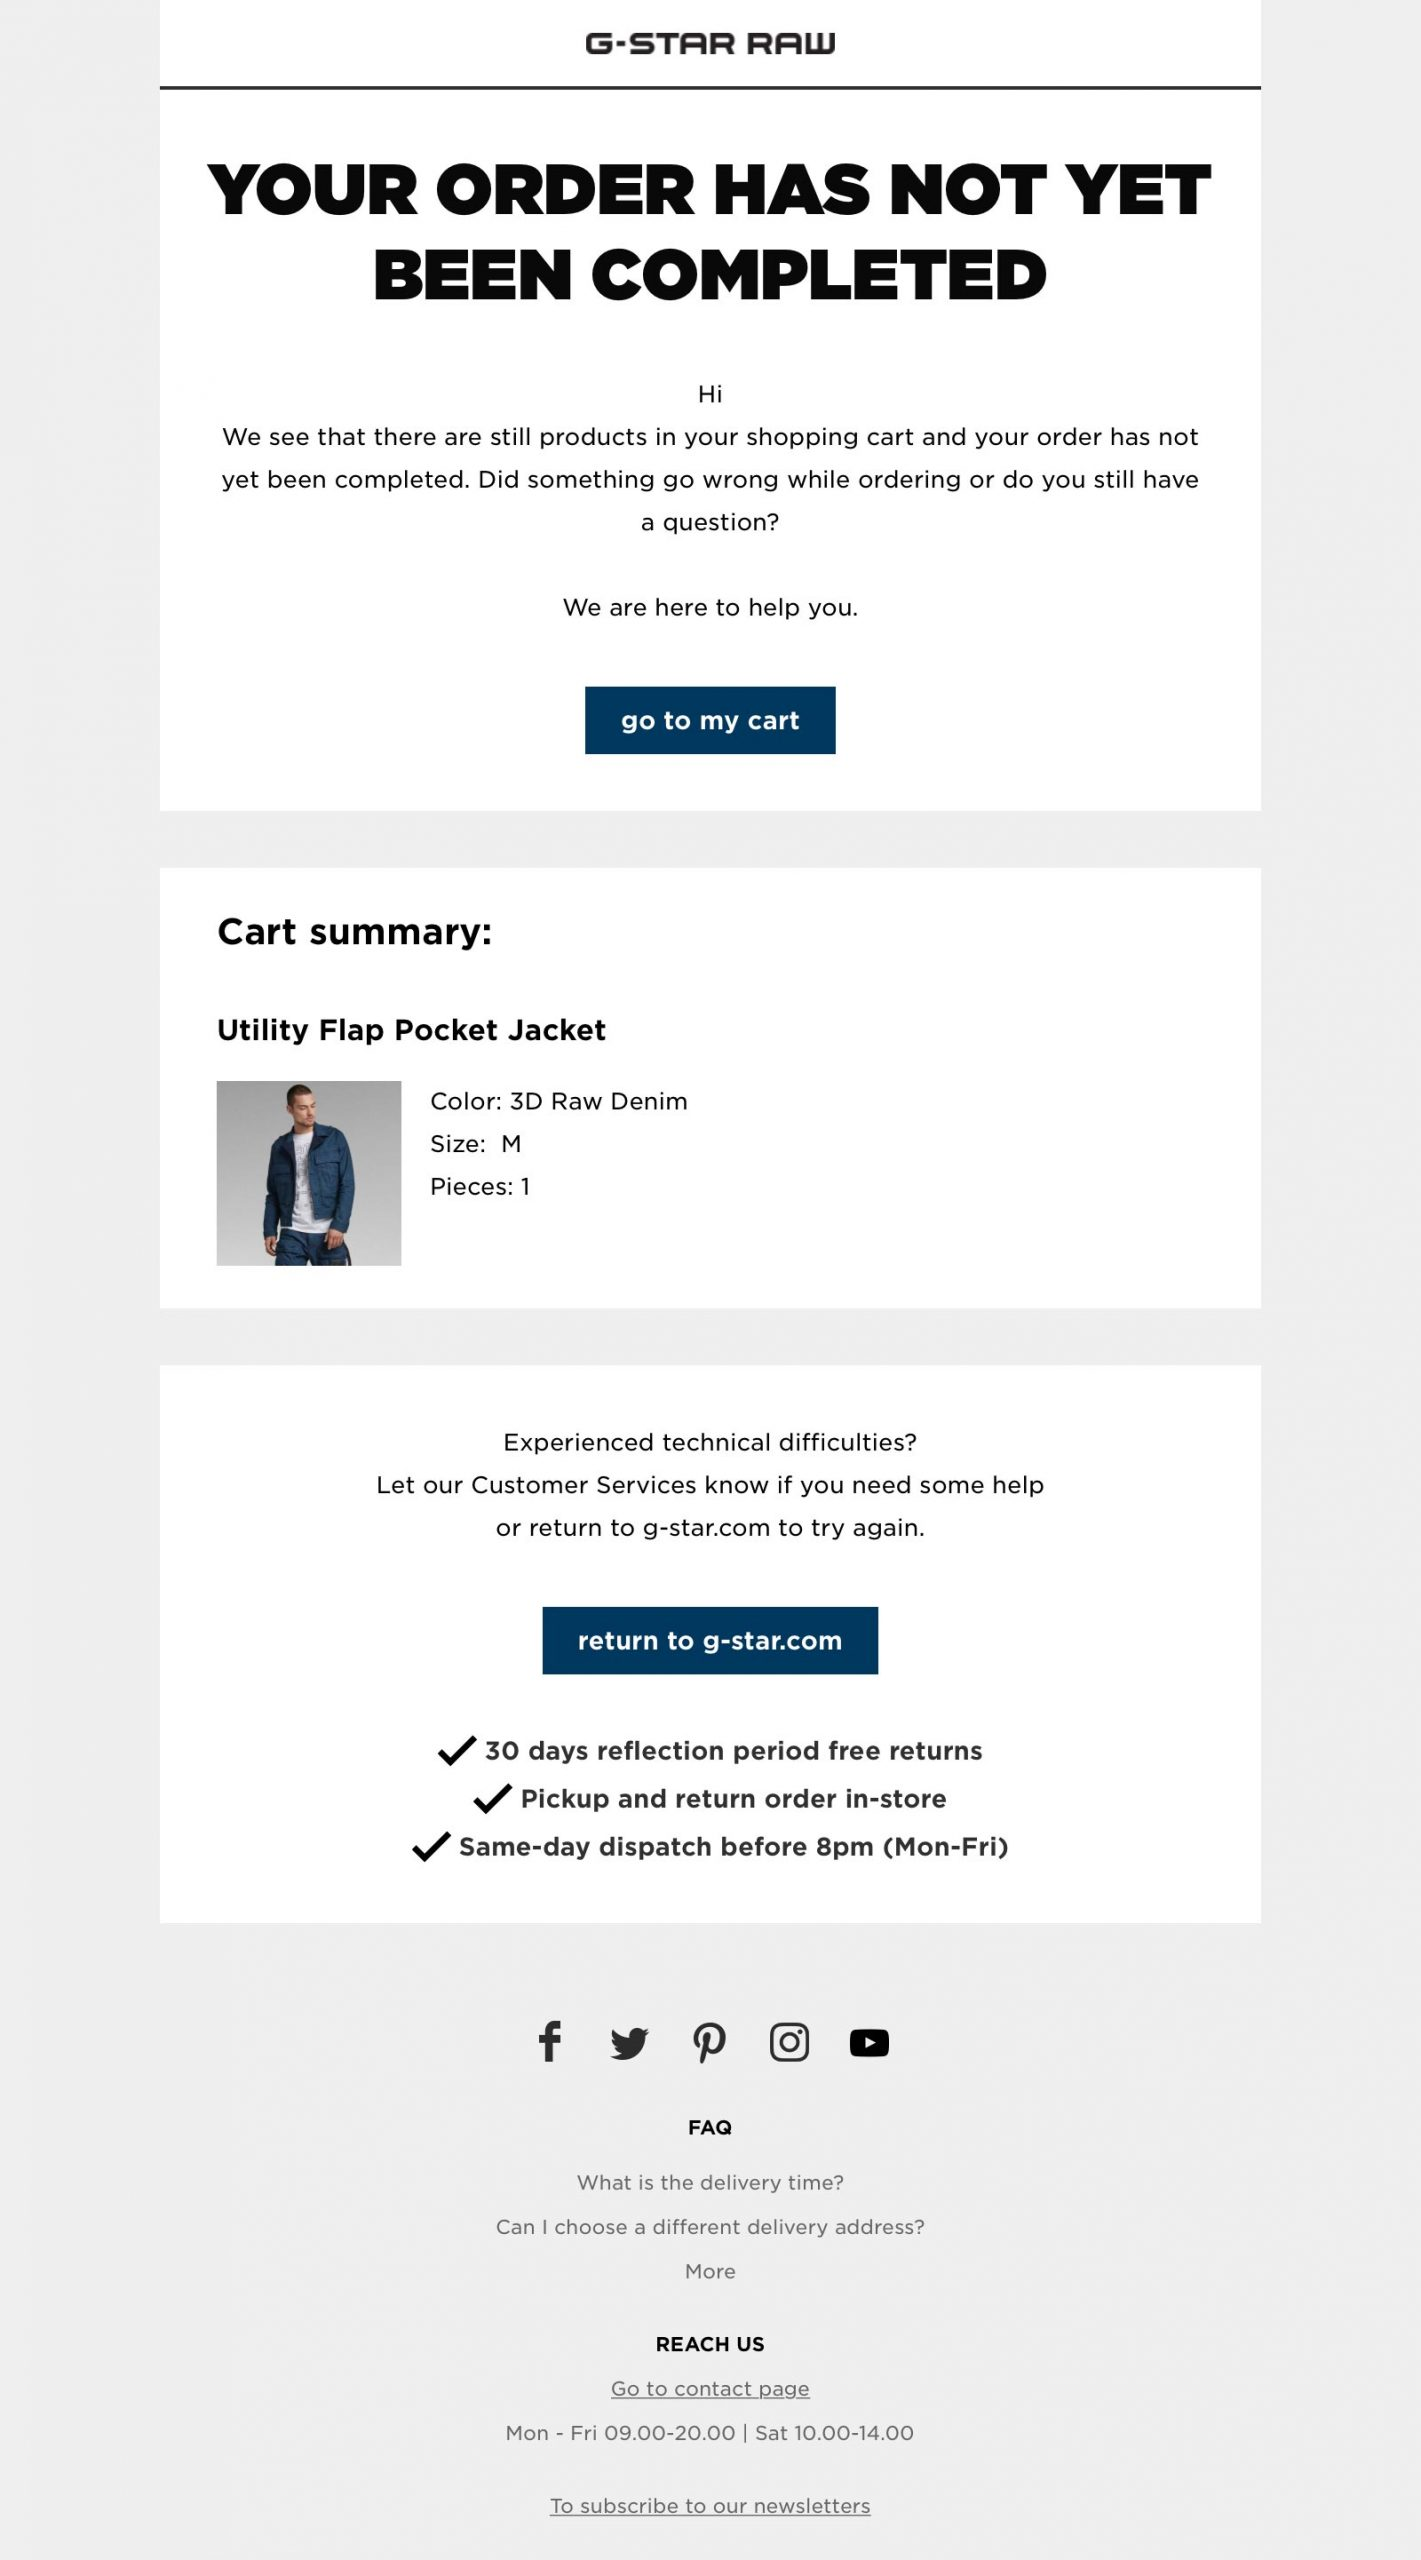 First abandoned cart recovery email. G-Star RAW